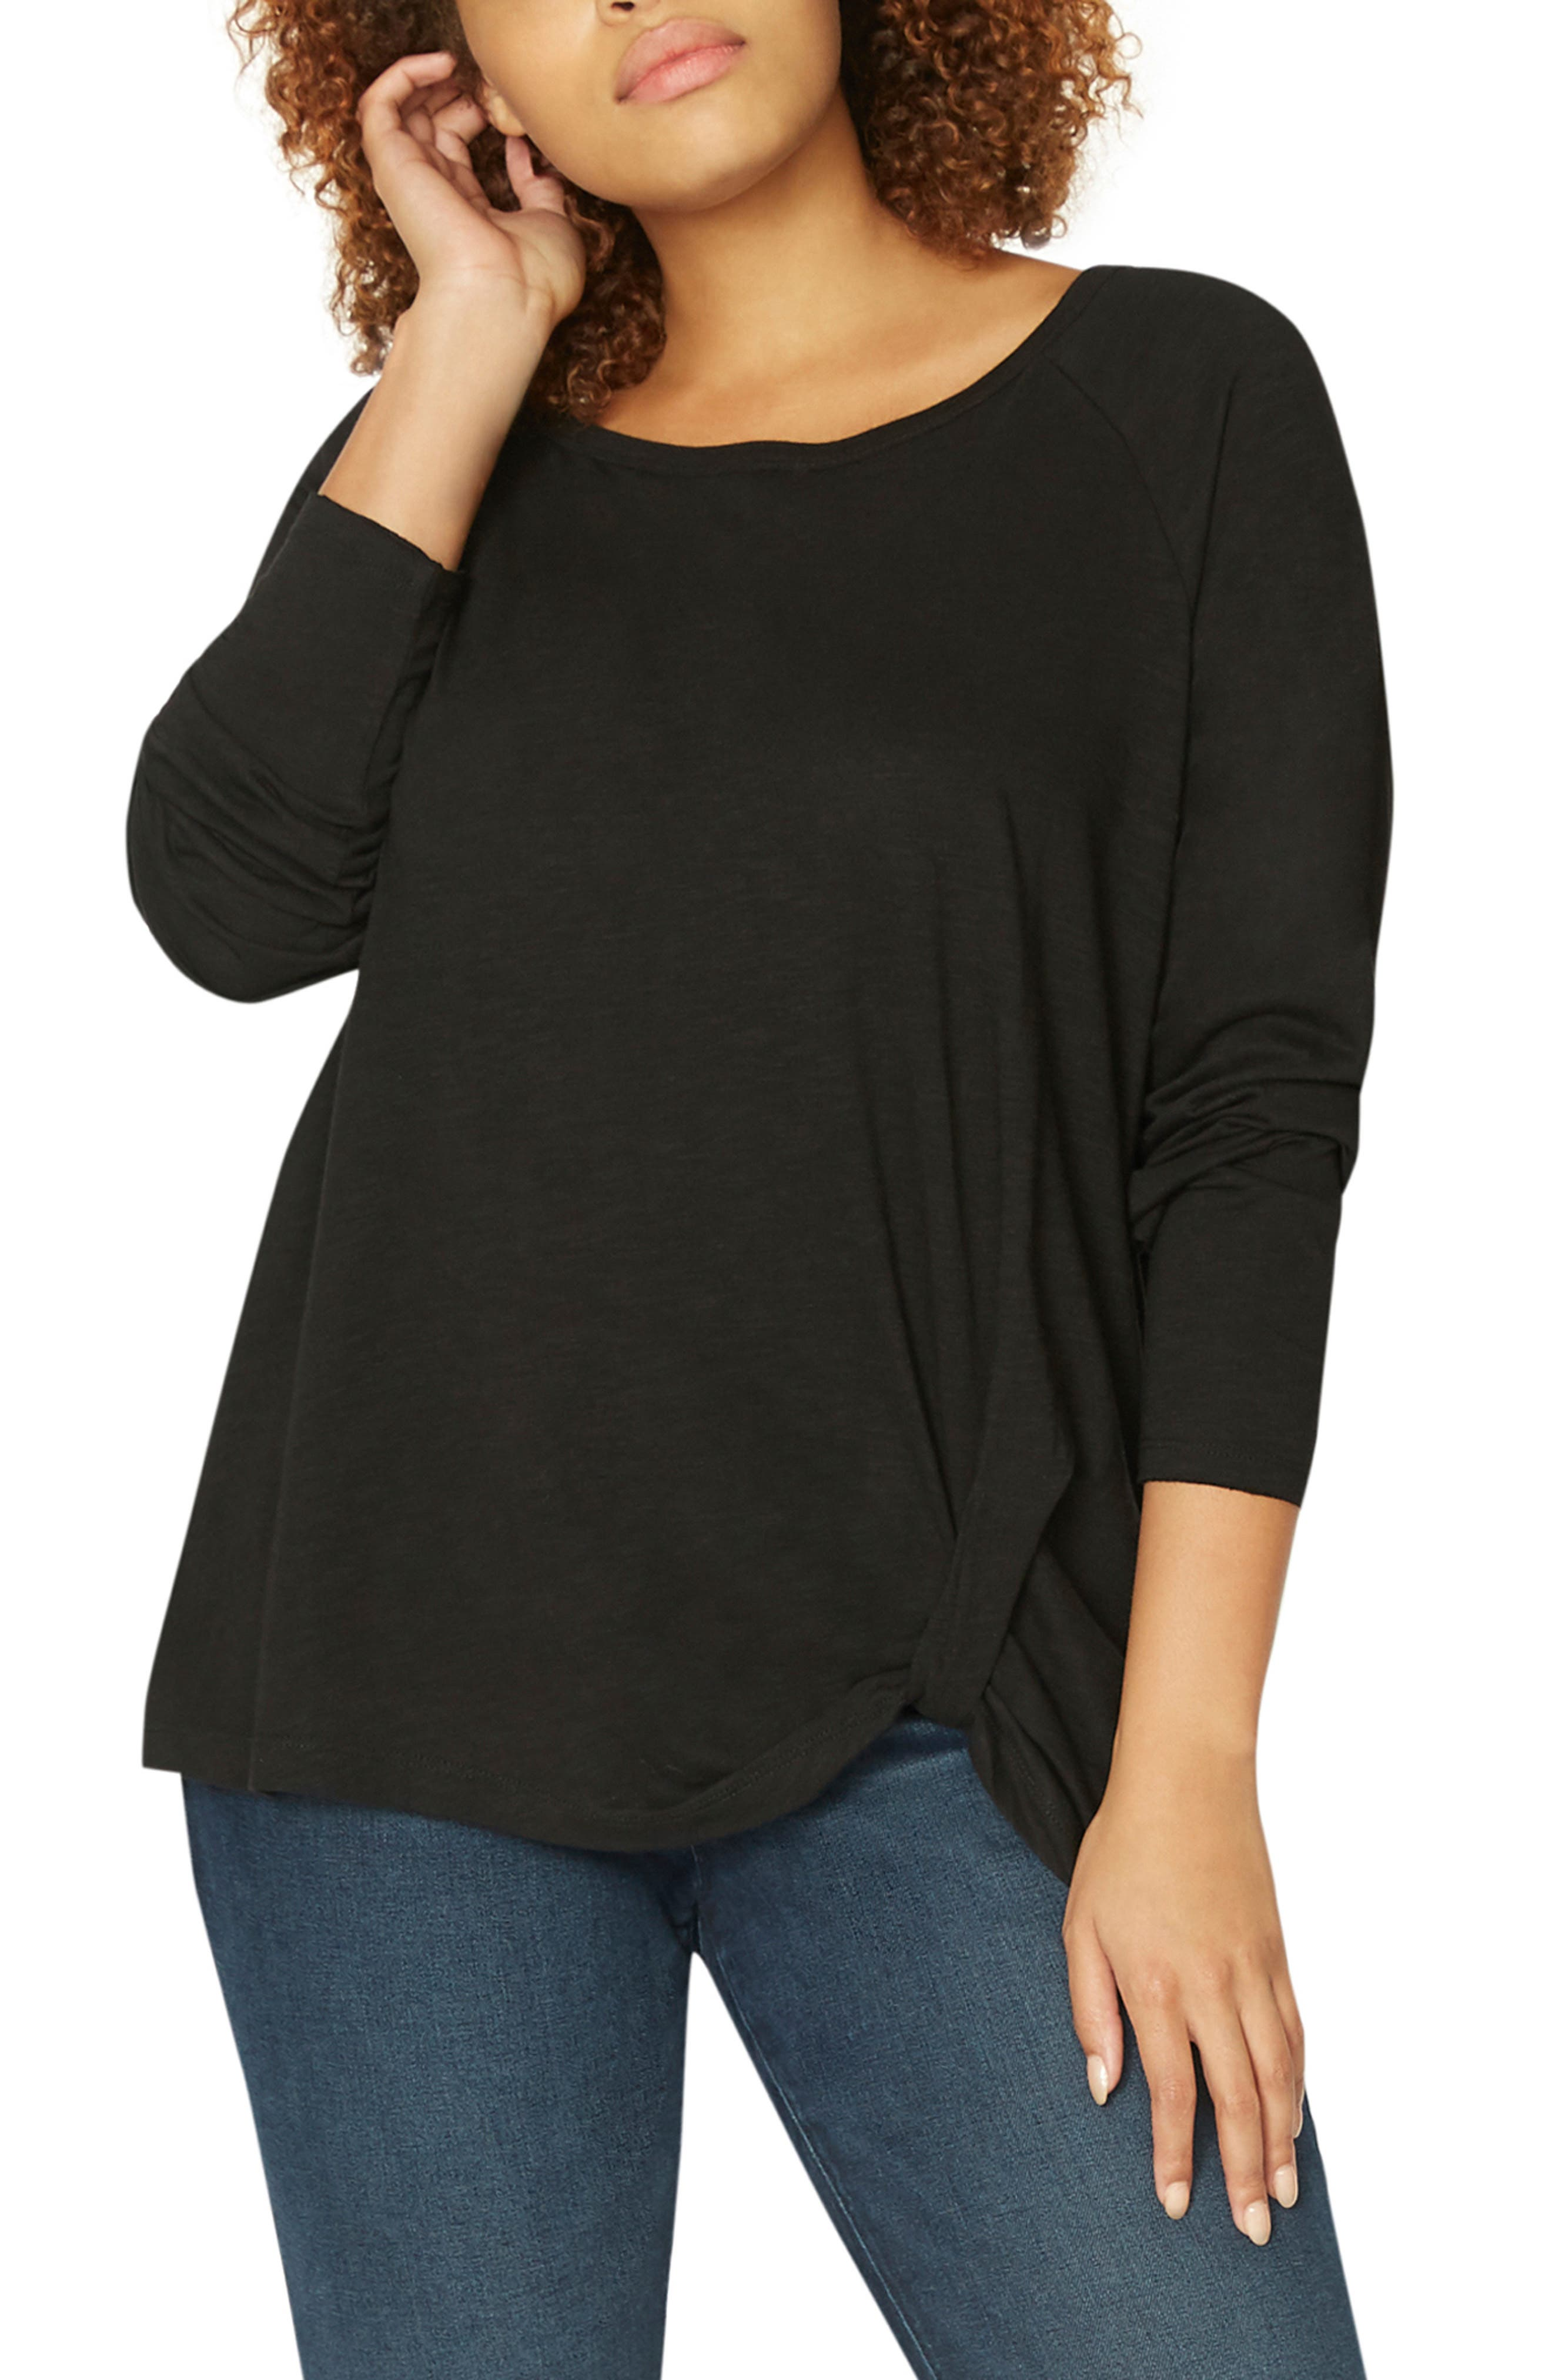 So Twisted Tee,                         Main,                         color, BLACK